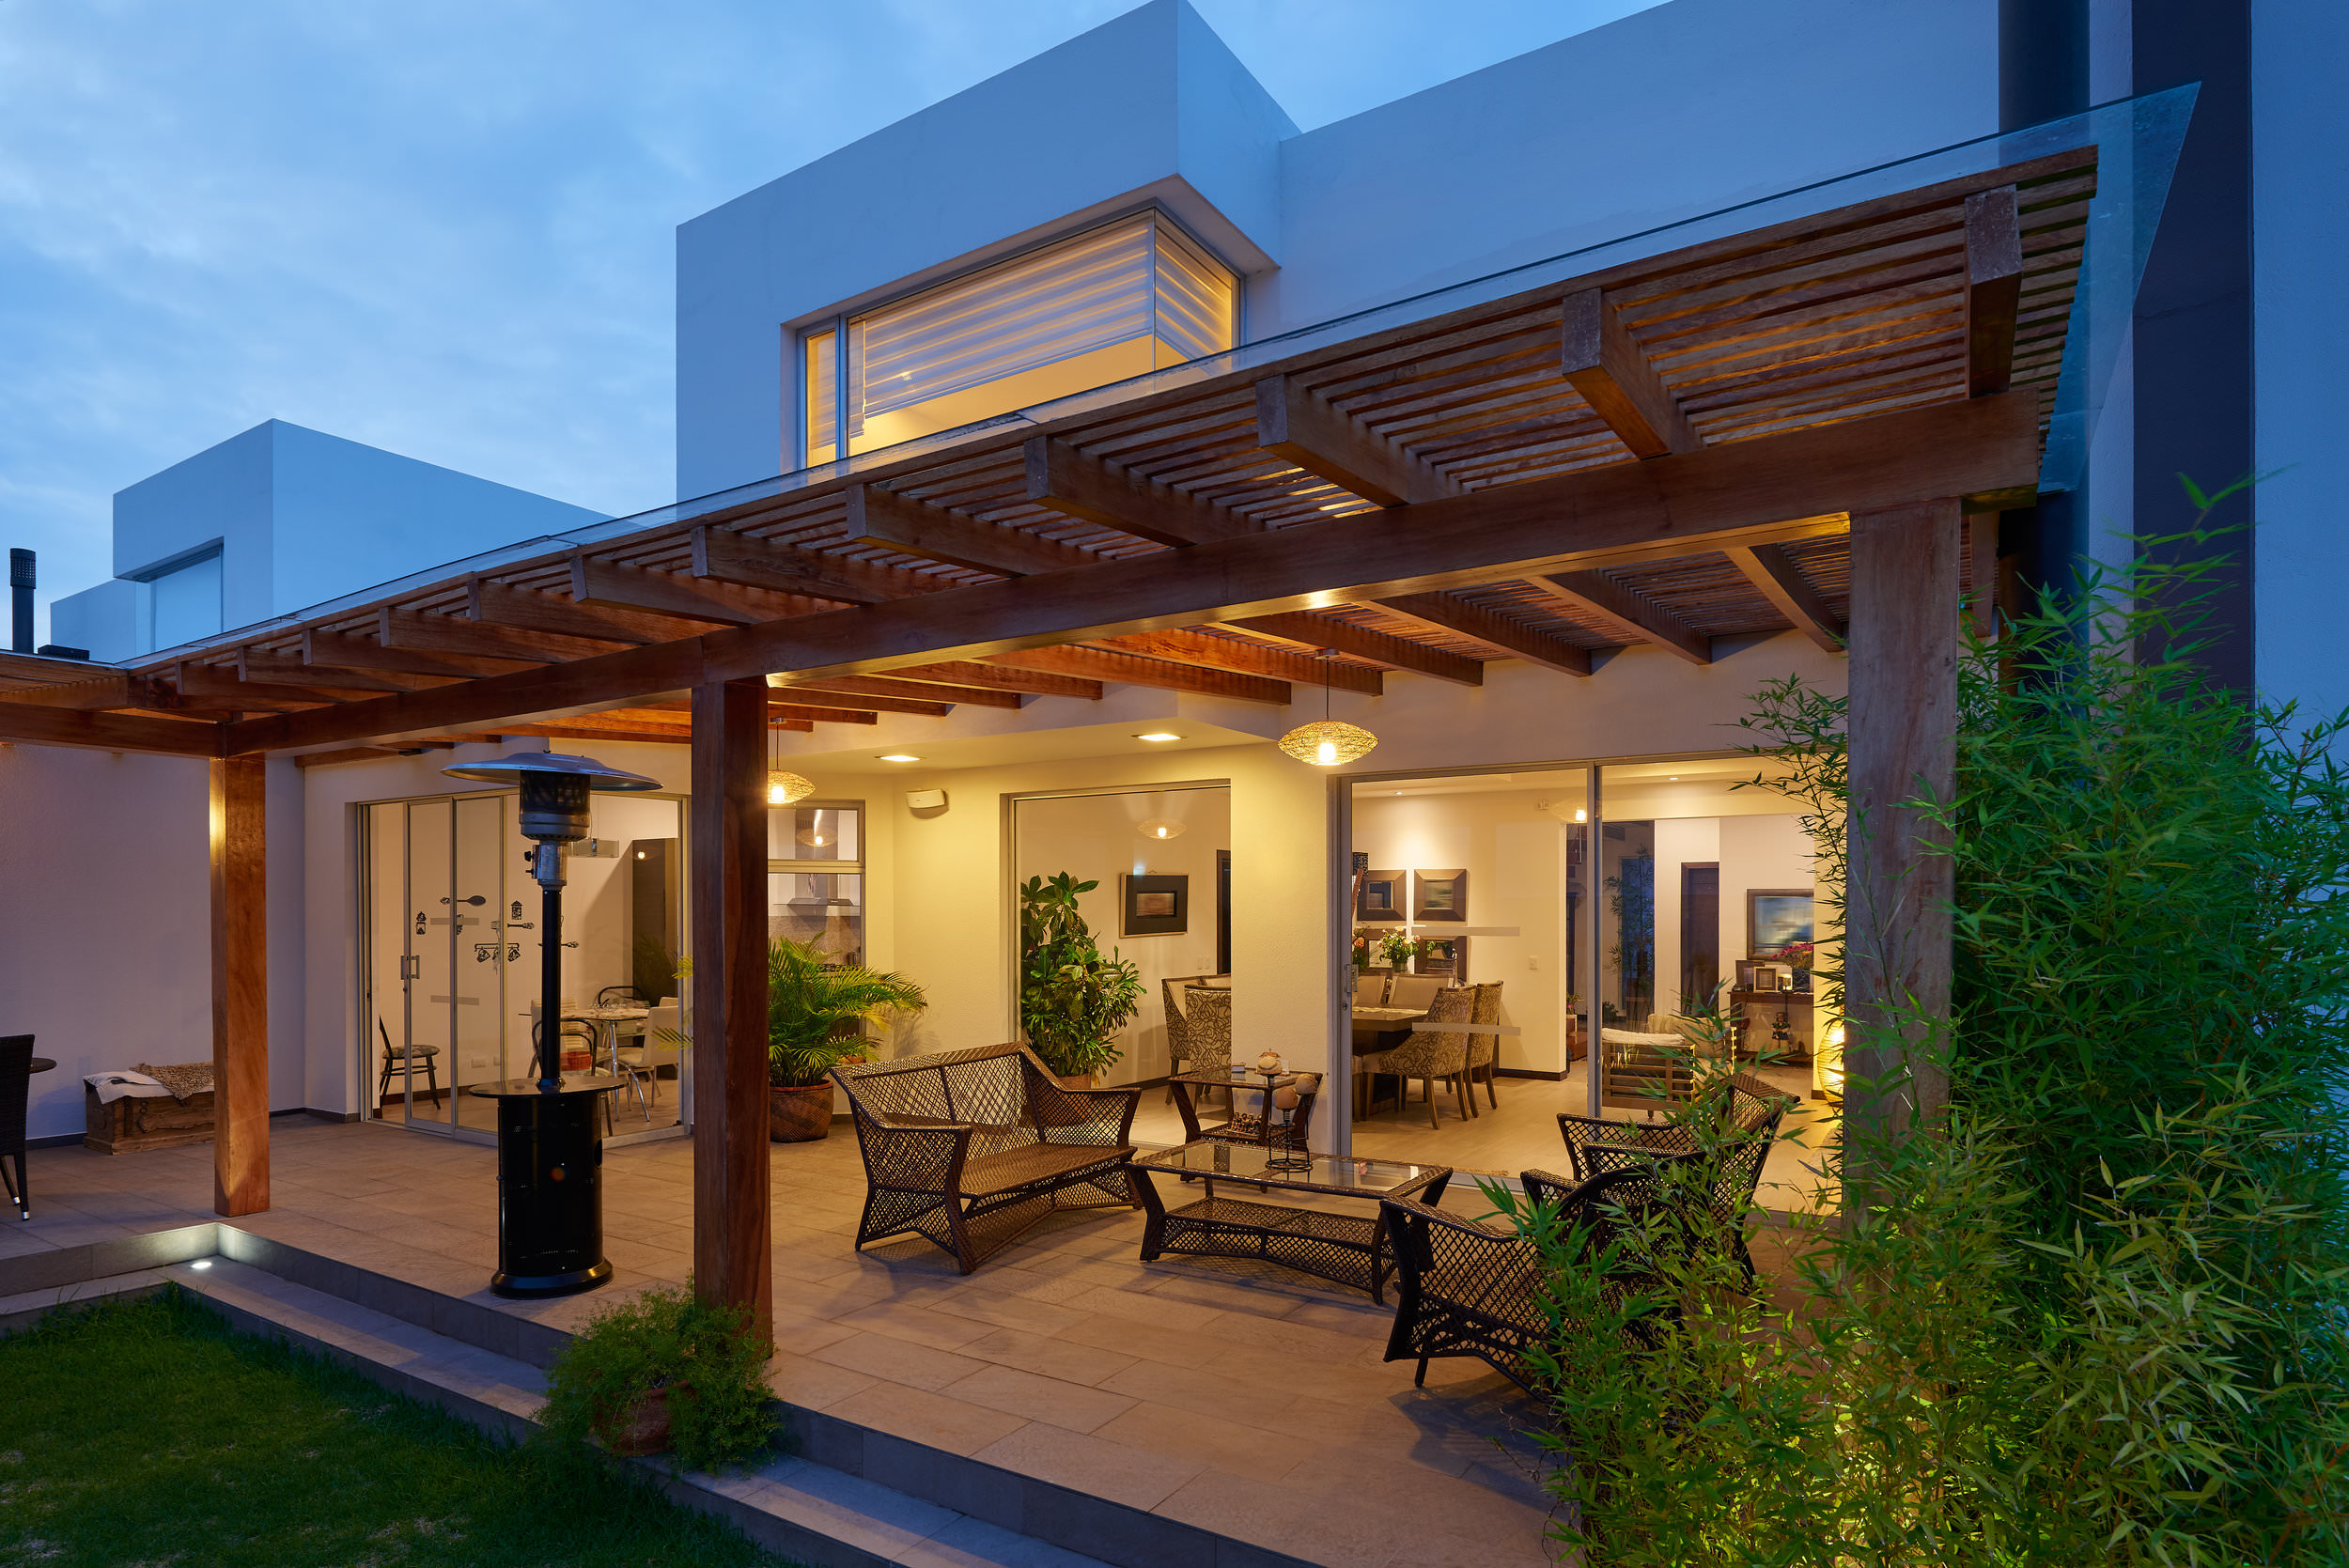 Outdoor entertainment space remodel in Southern California